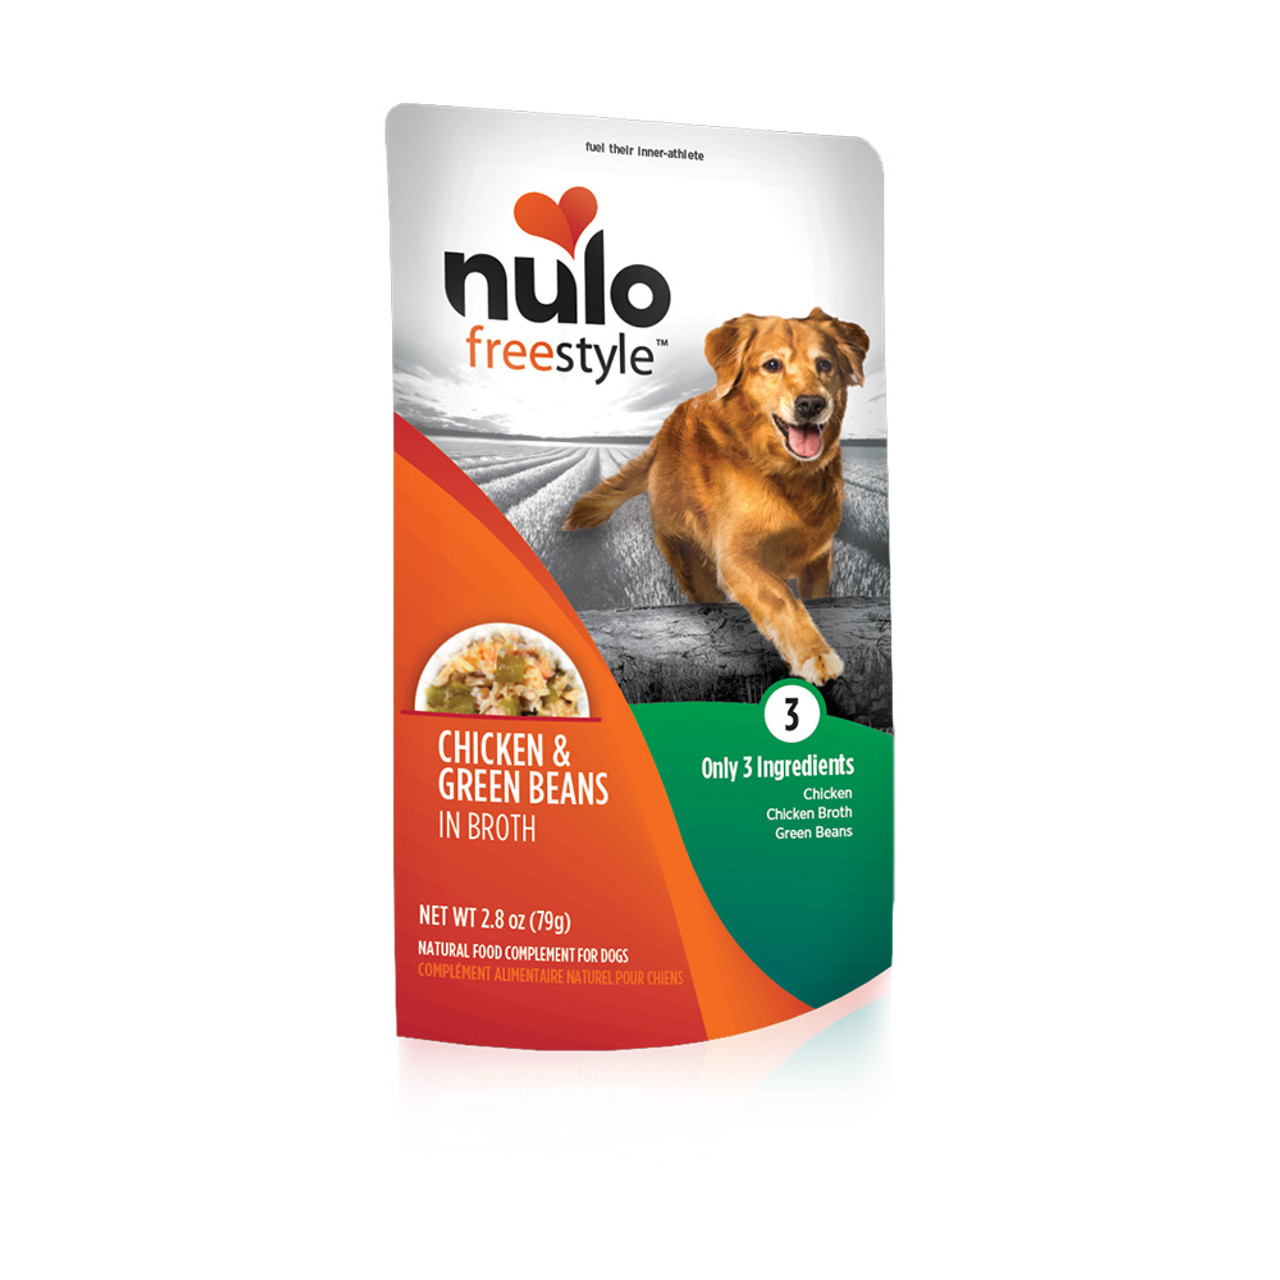 Nulo Freestyle Puppy & Adult Chicken & Green Beans Recipe Dog Food Pouch